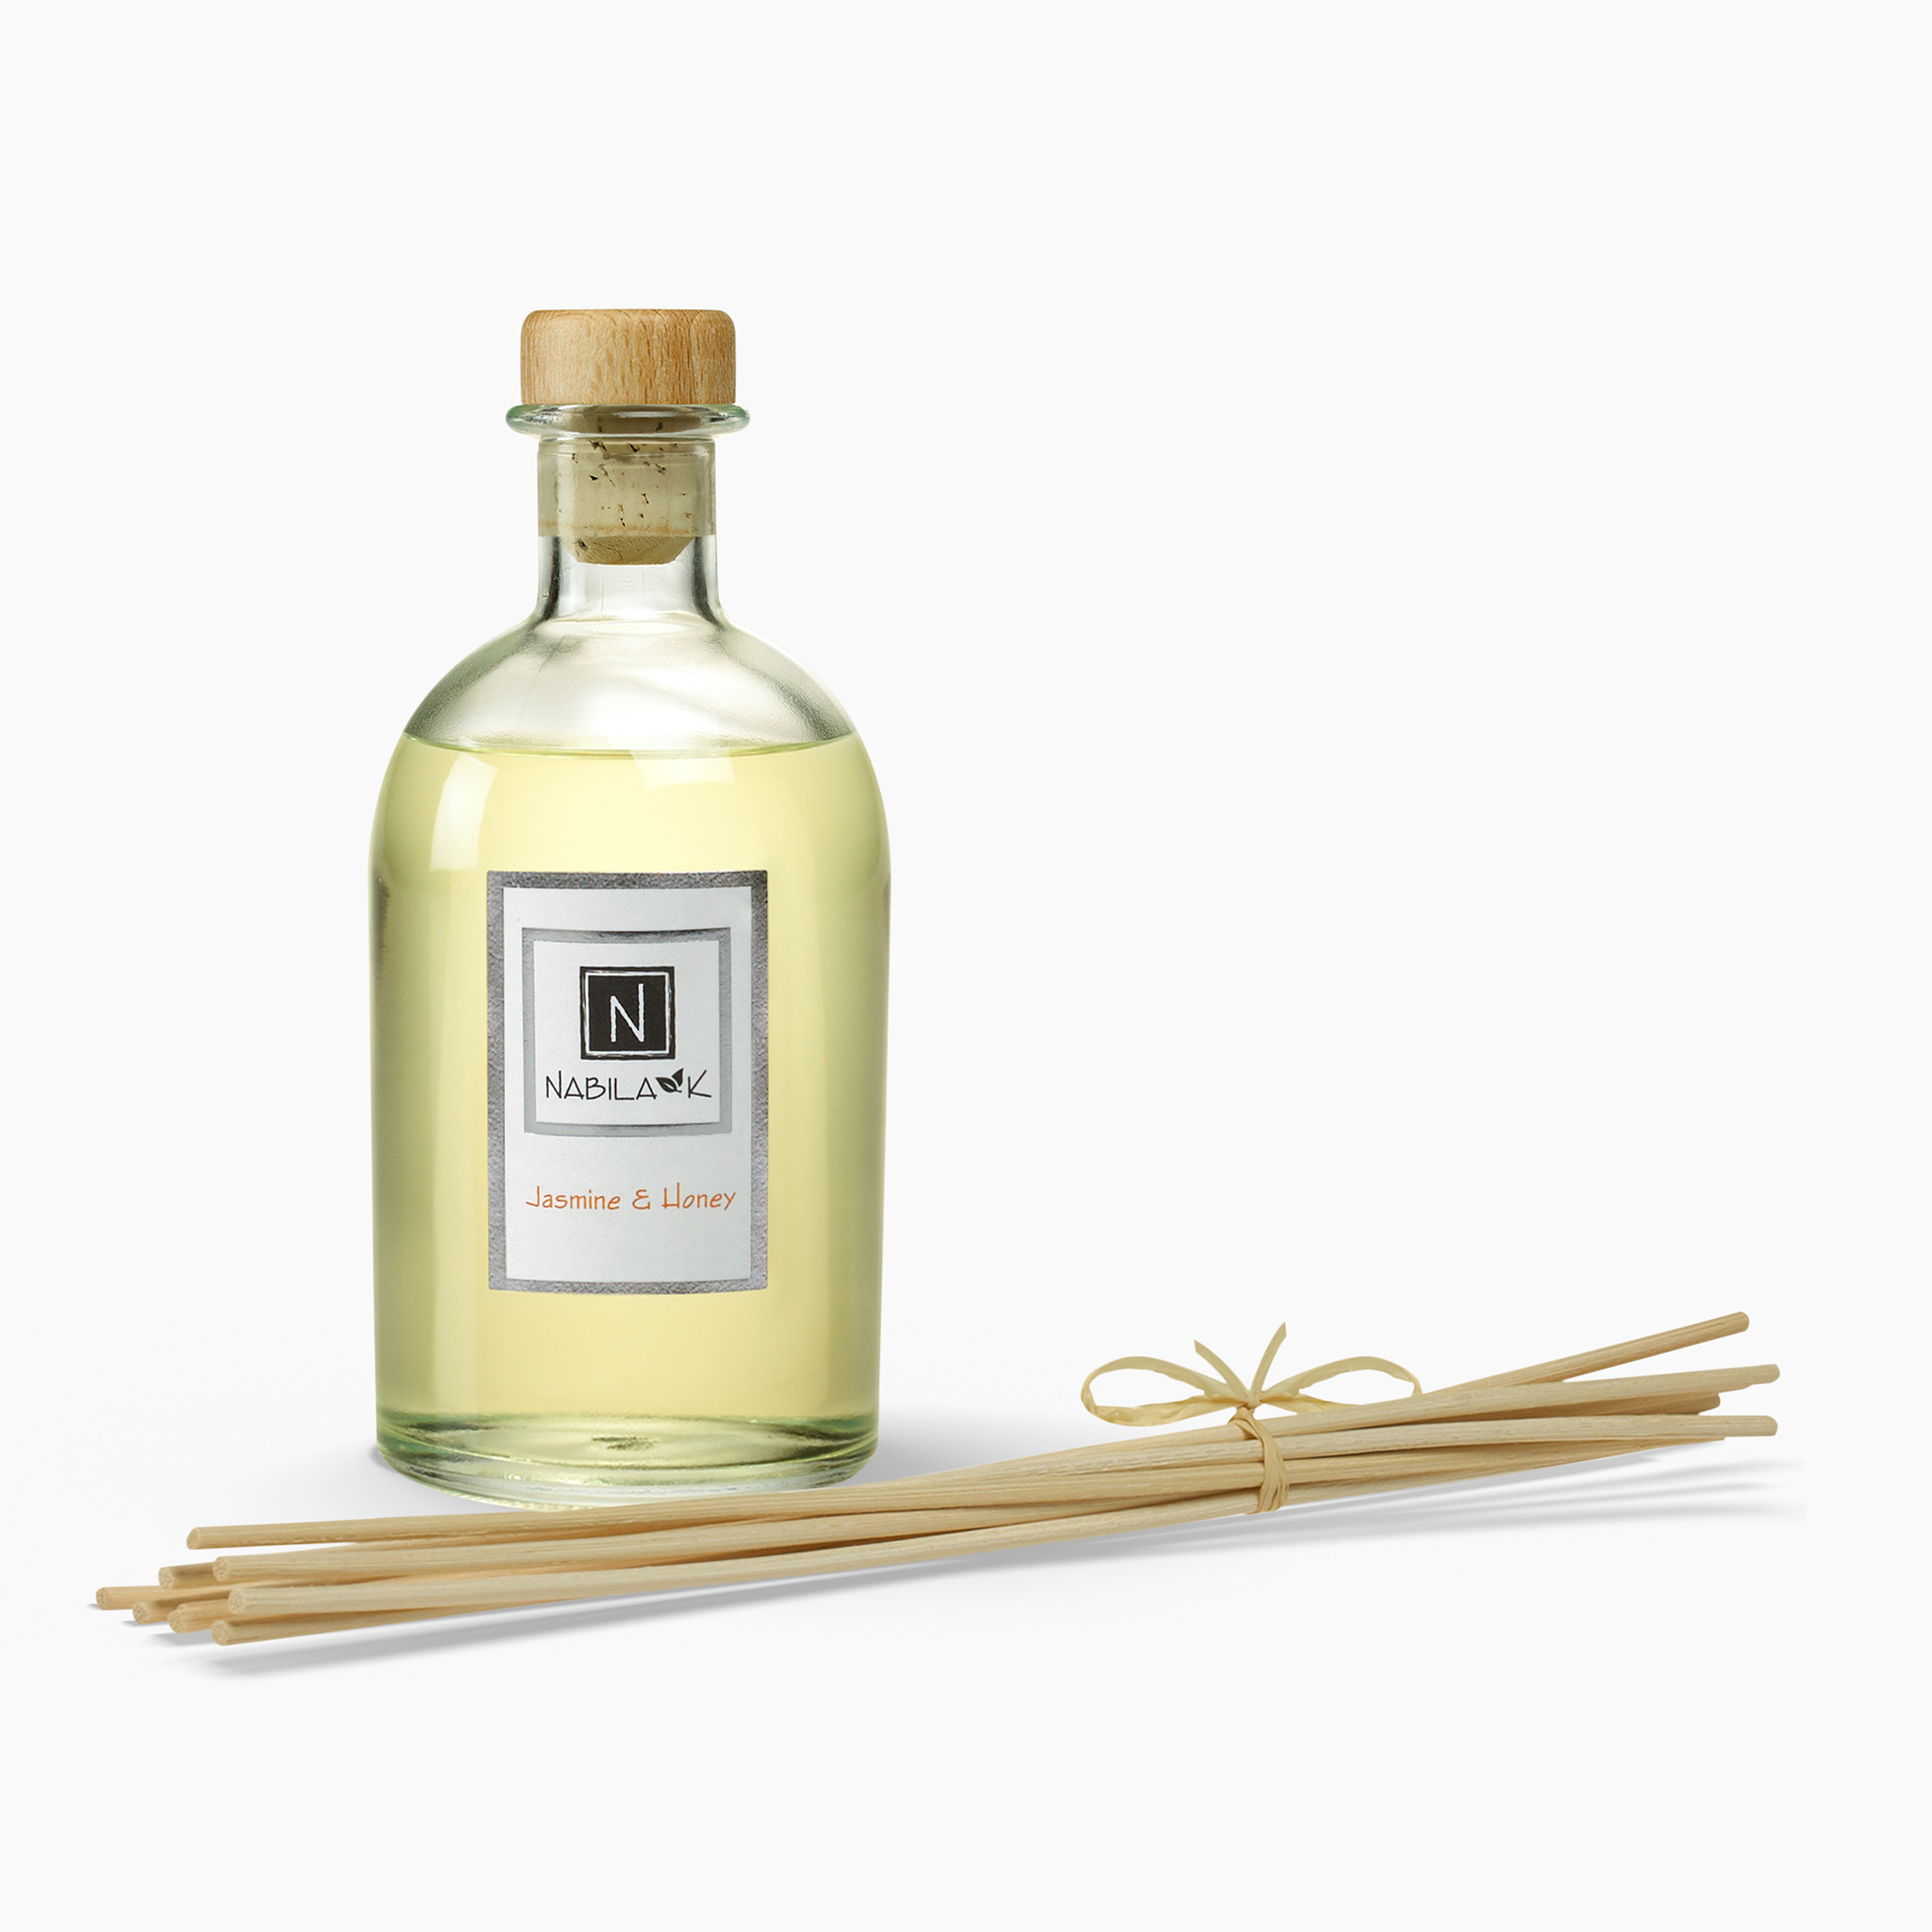 1 Bottle of Nabila K's Jasmine and Honey Diffuser with Reeds